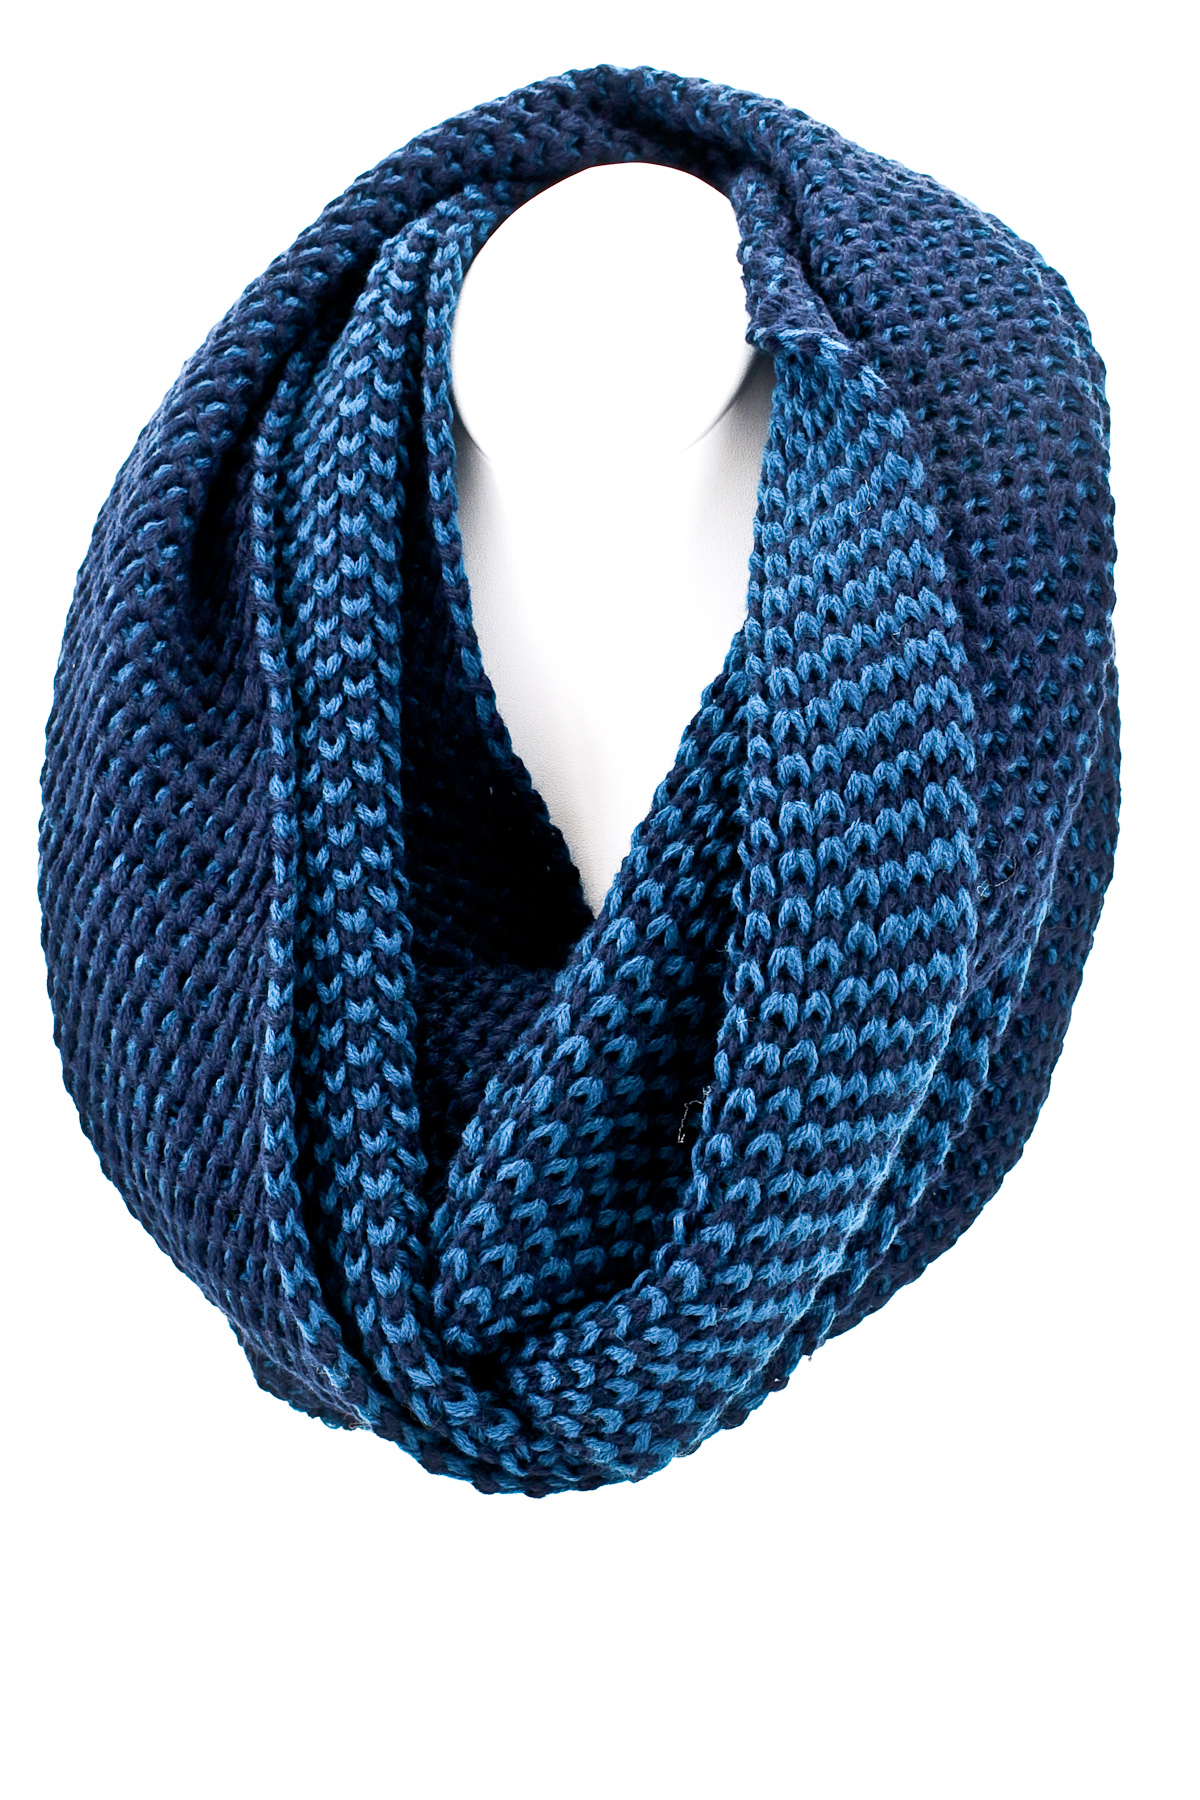 Find great deals on eBay for infinity scarf winter. Shop with confidence.